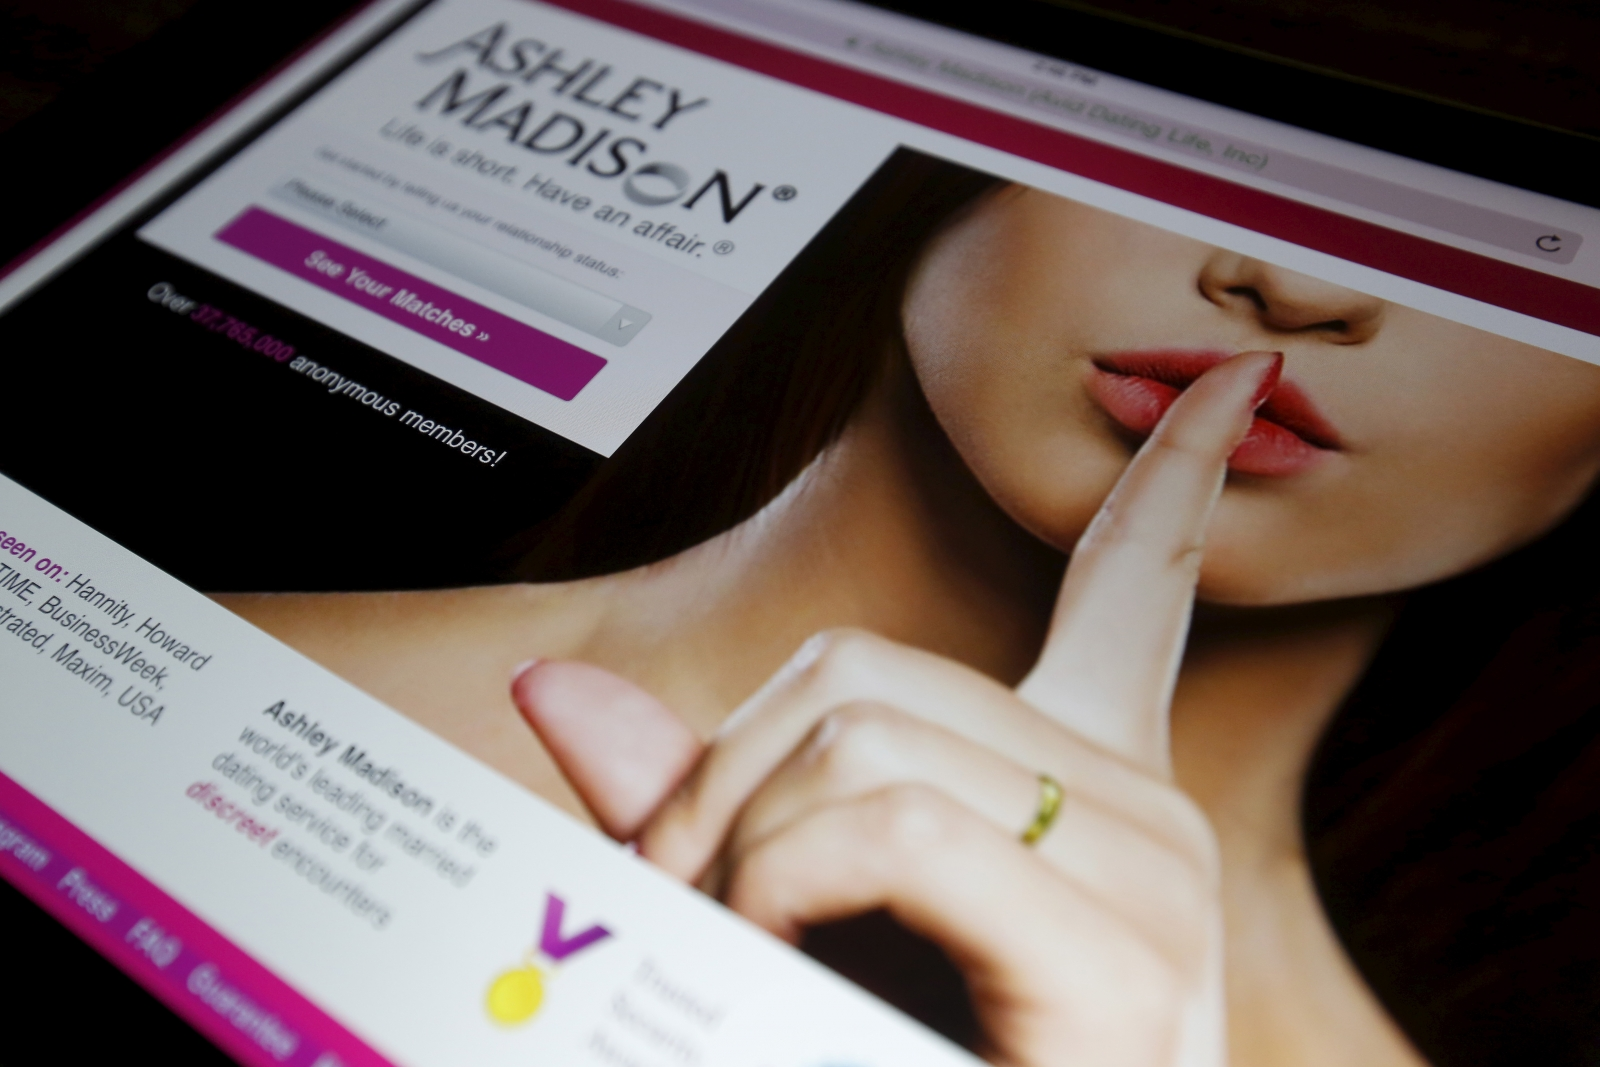 how to find someone on ashley madison